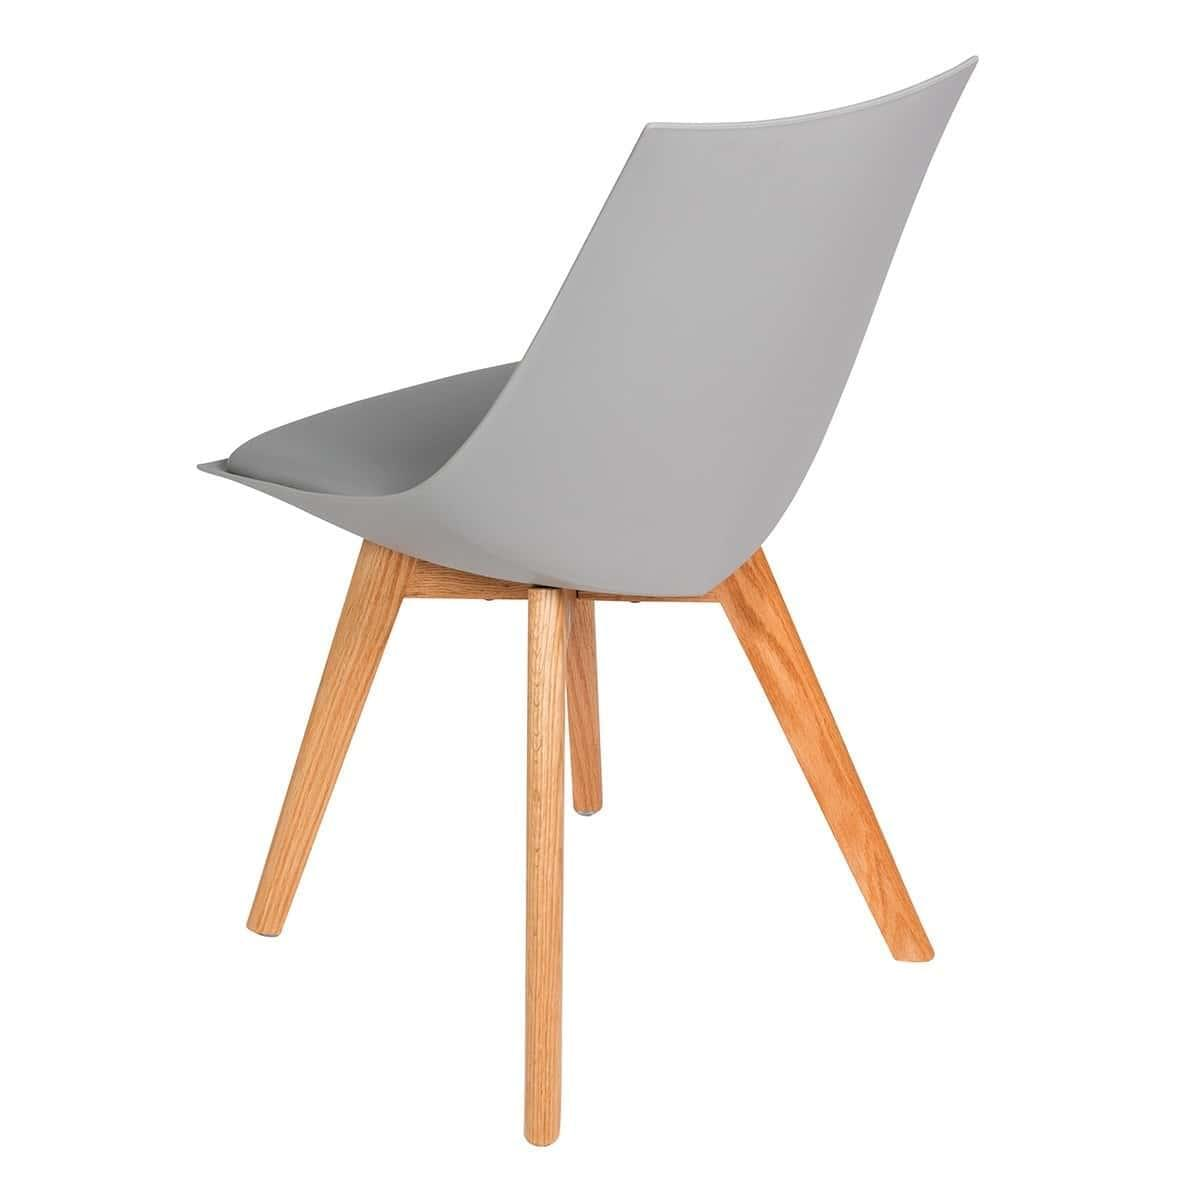 Set of 2 Arlo Modern Designer Dining Chair - Grey with Oak Legs